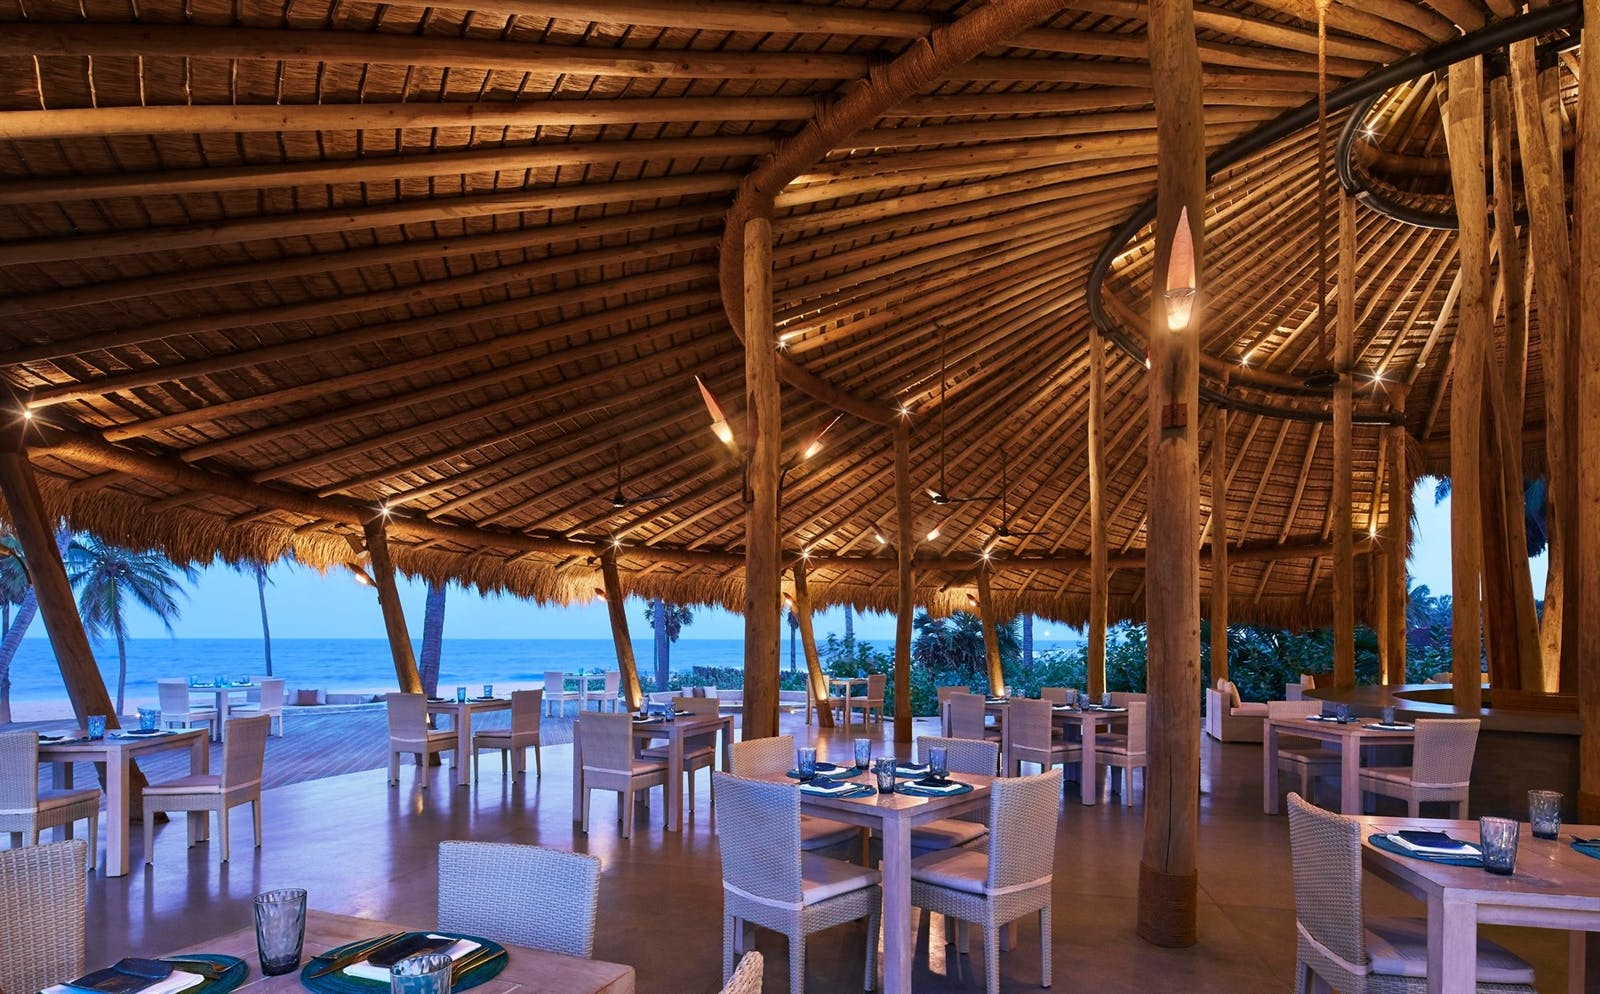 Dining Area, Jetwing Surf, East Coast Beaches, Sri Lanka